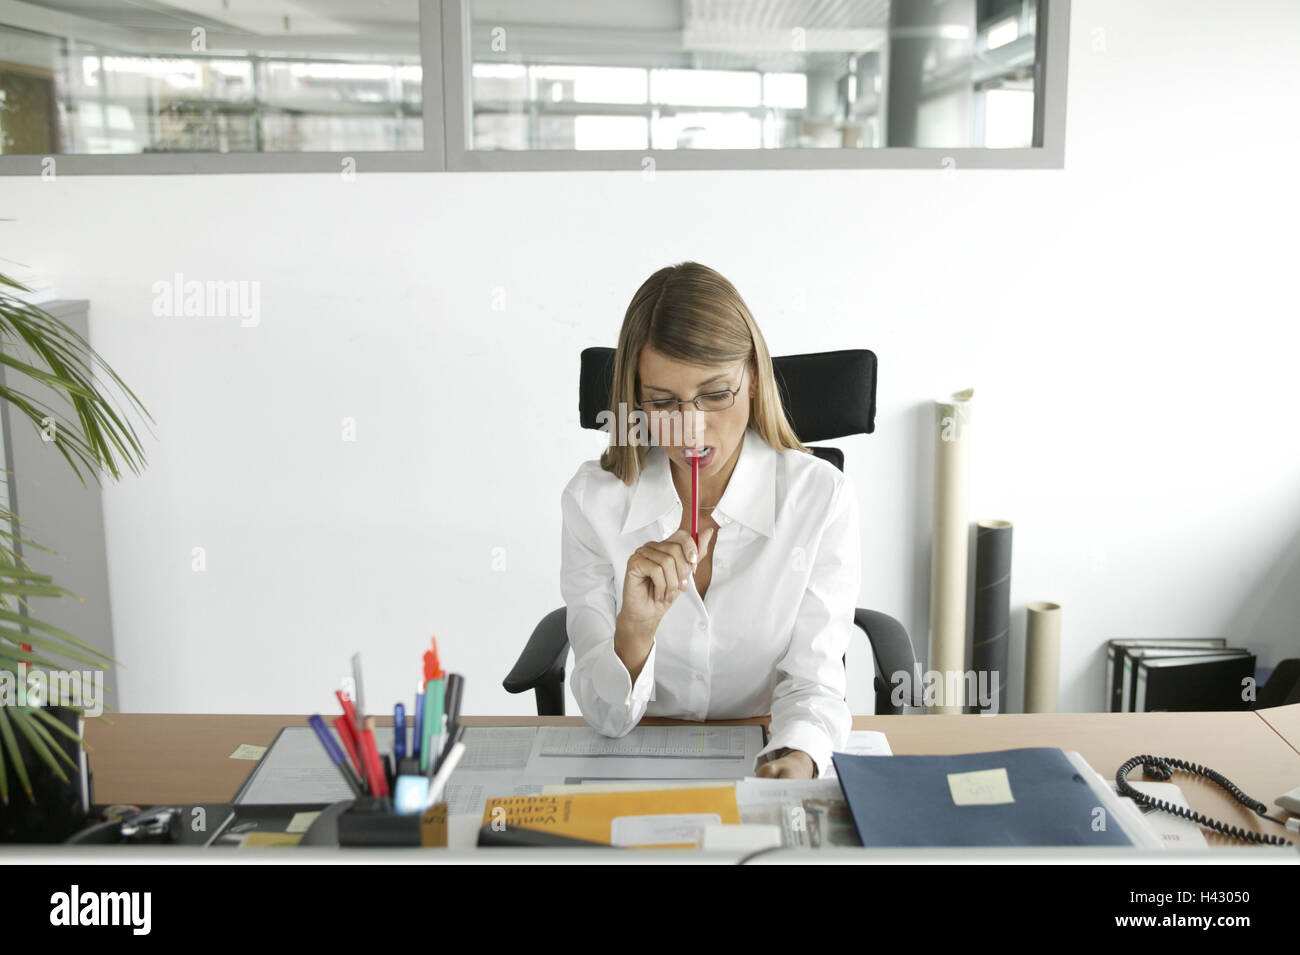 Office, desk, office workers, bases, concentration, 30-40 years, business, work, occupation, clerks, secretary, - Stock Image